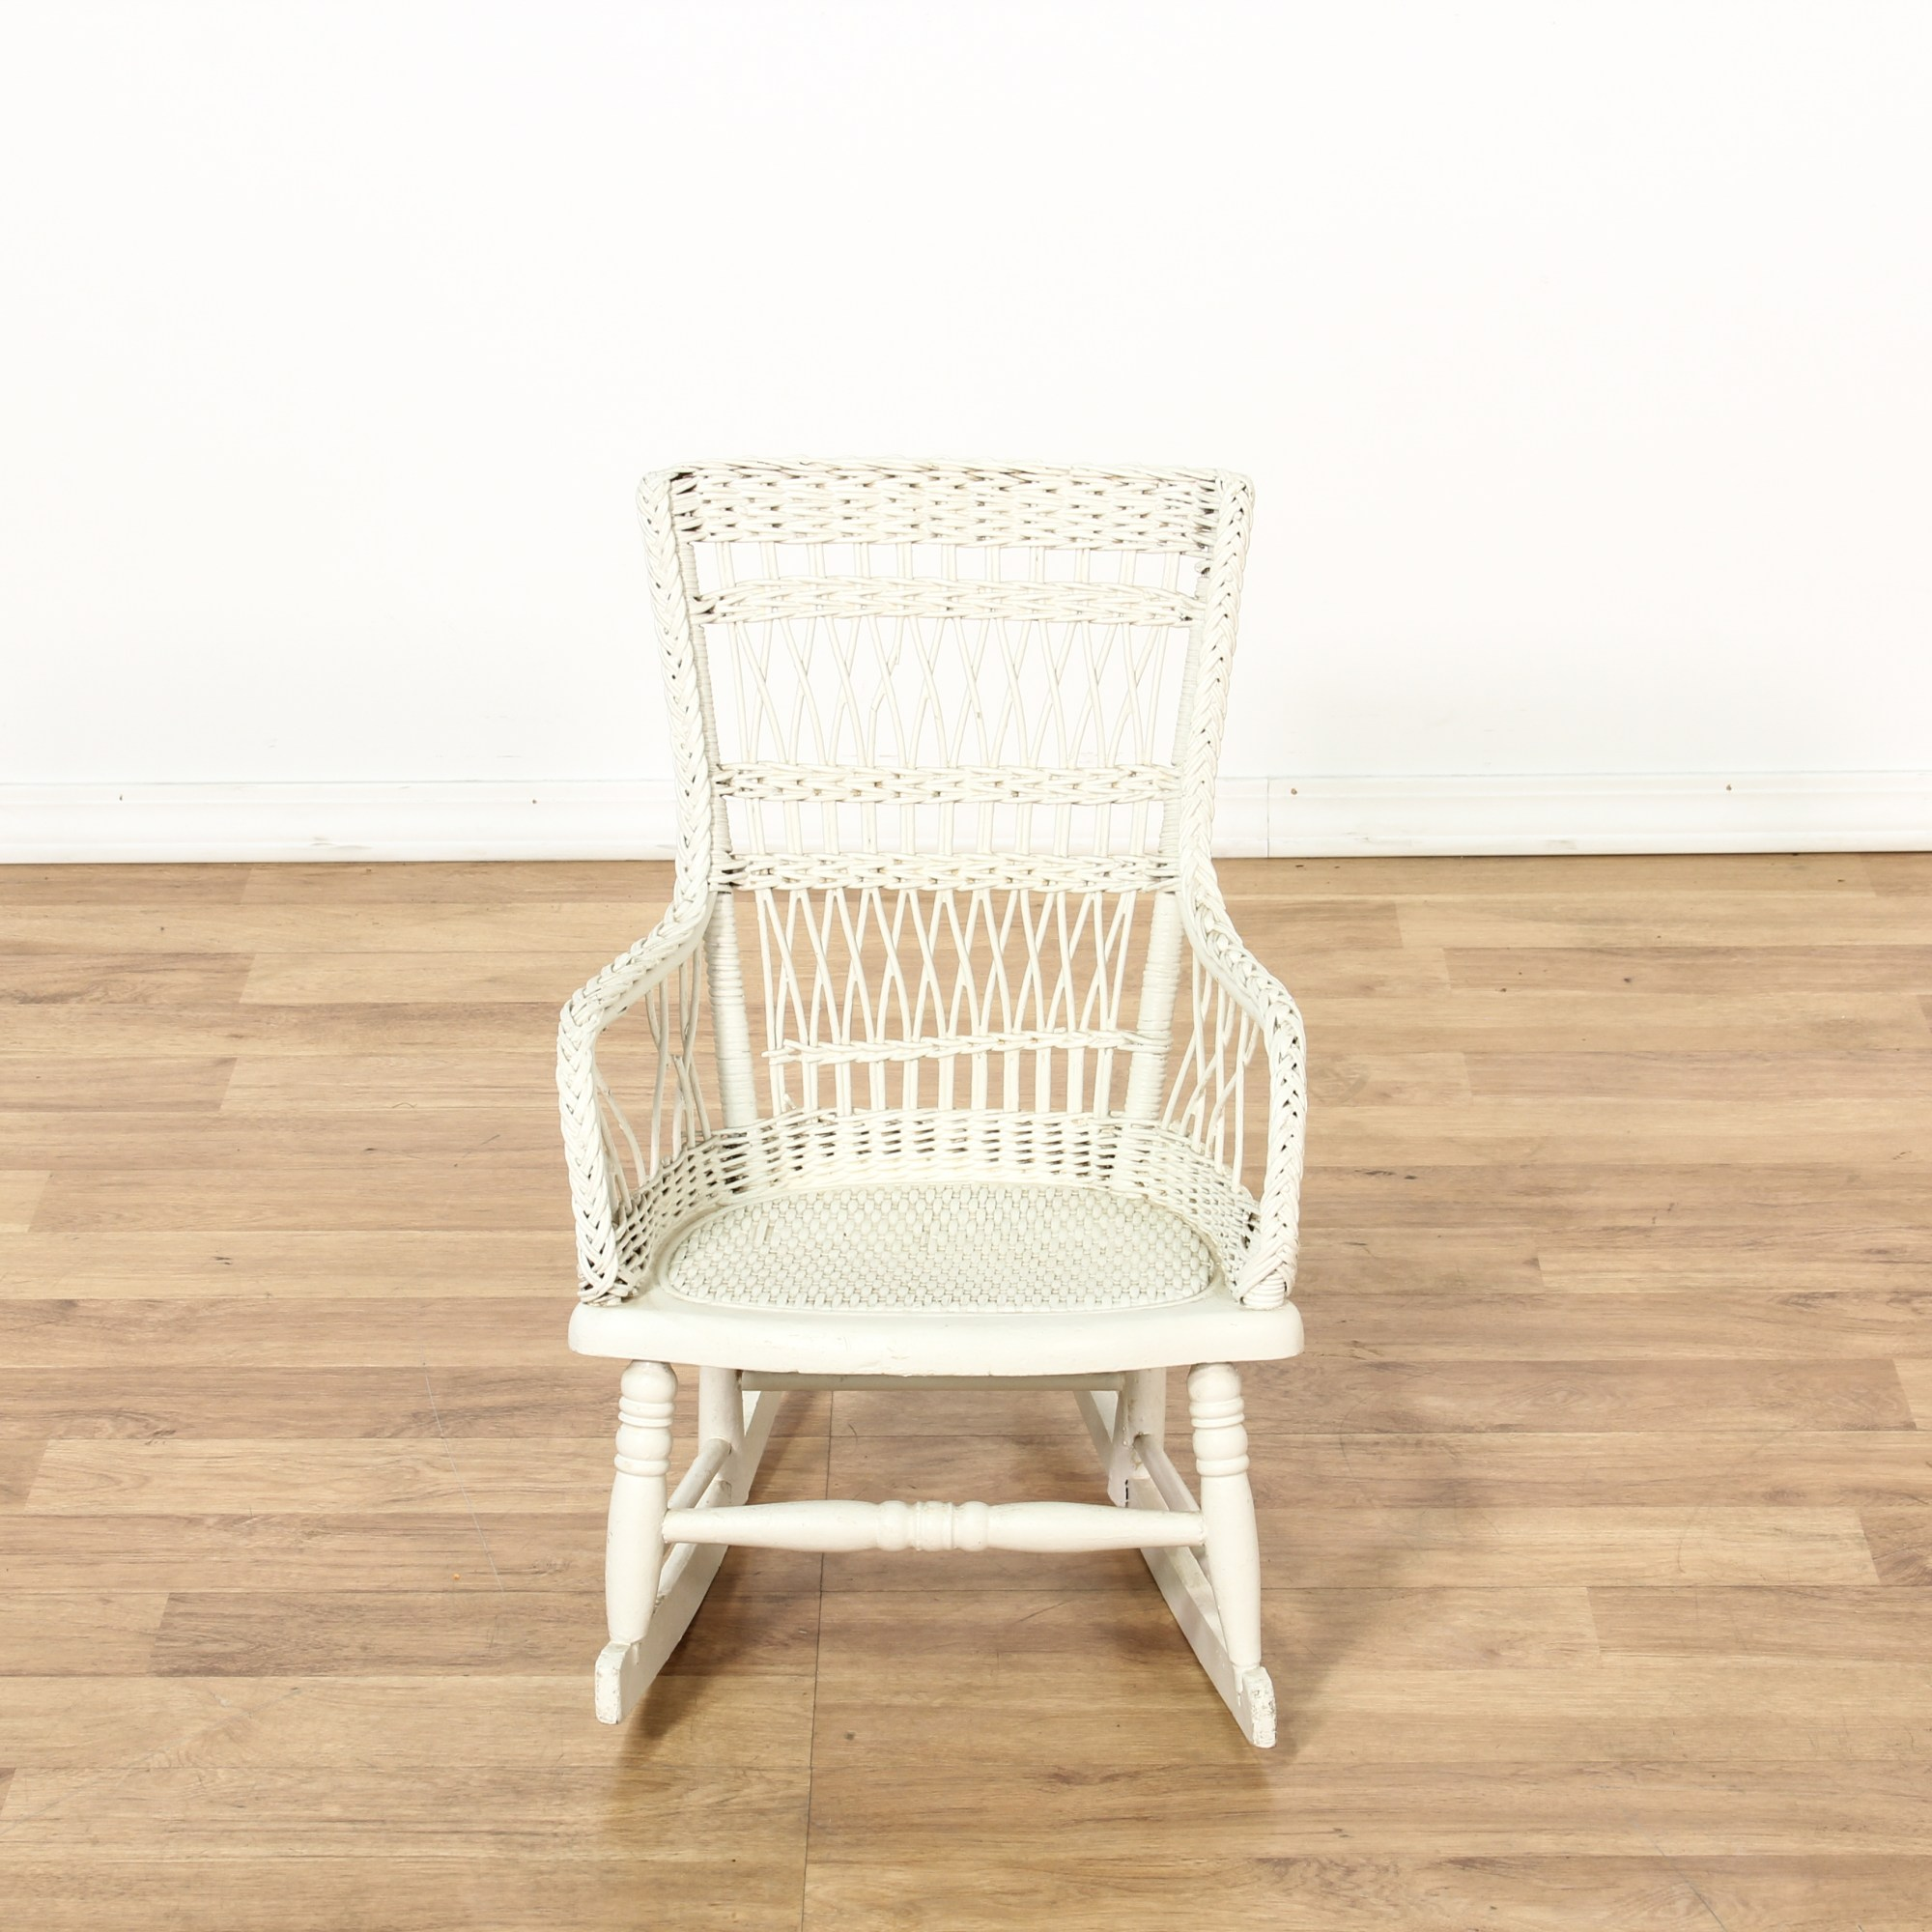 White Wicker Rocking Chair Child 39s White Painted Wicker Rocking Chair Loveseat